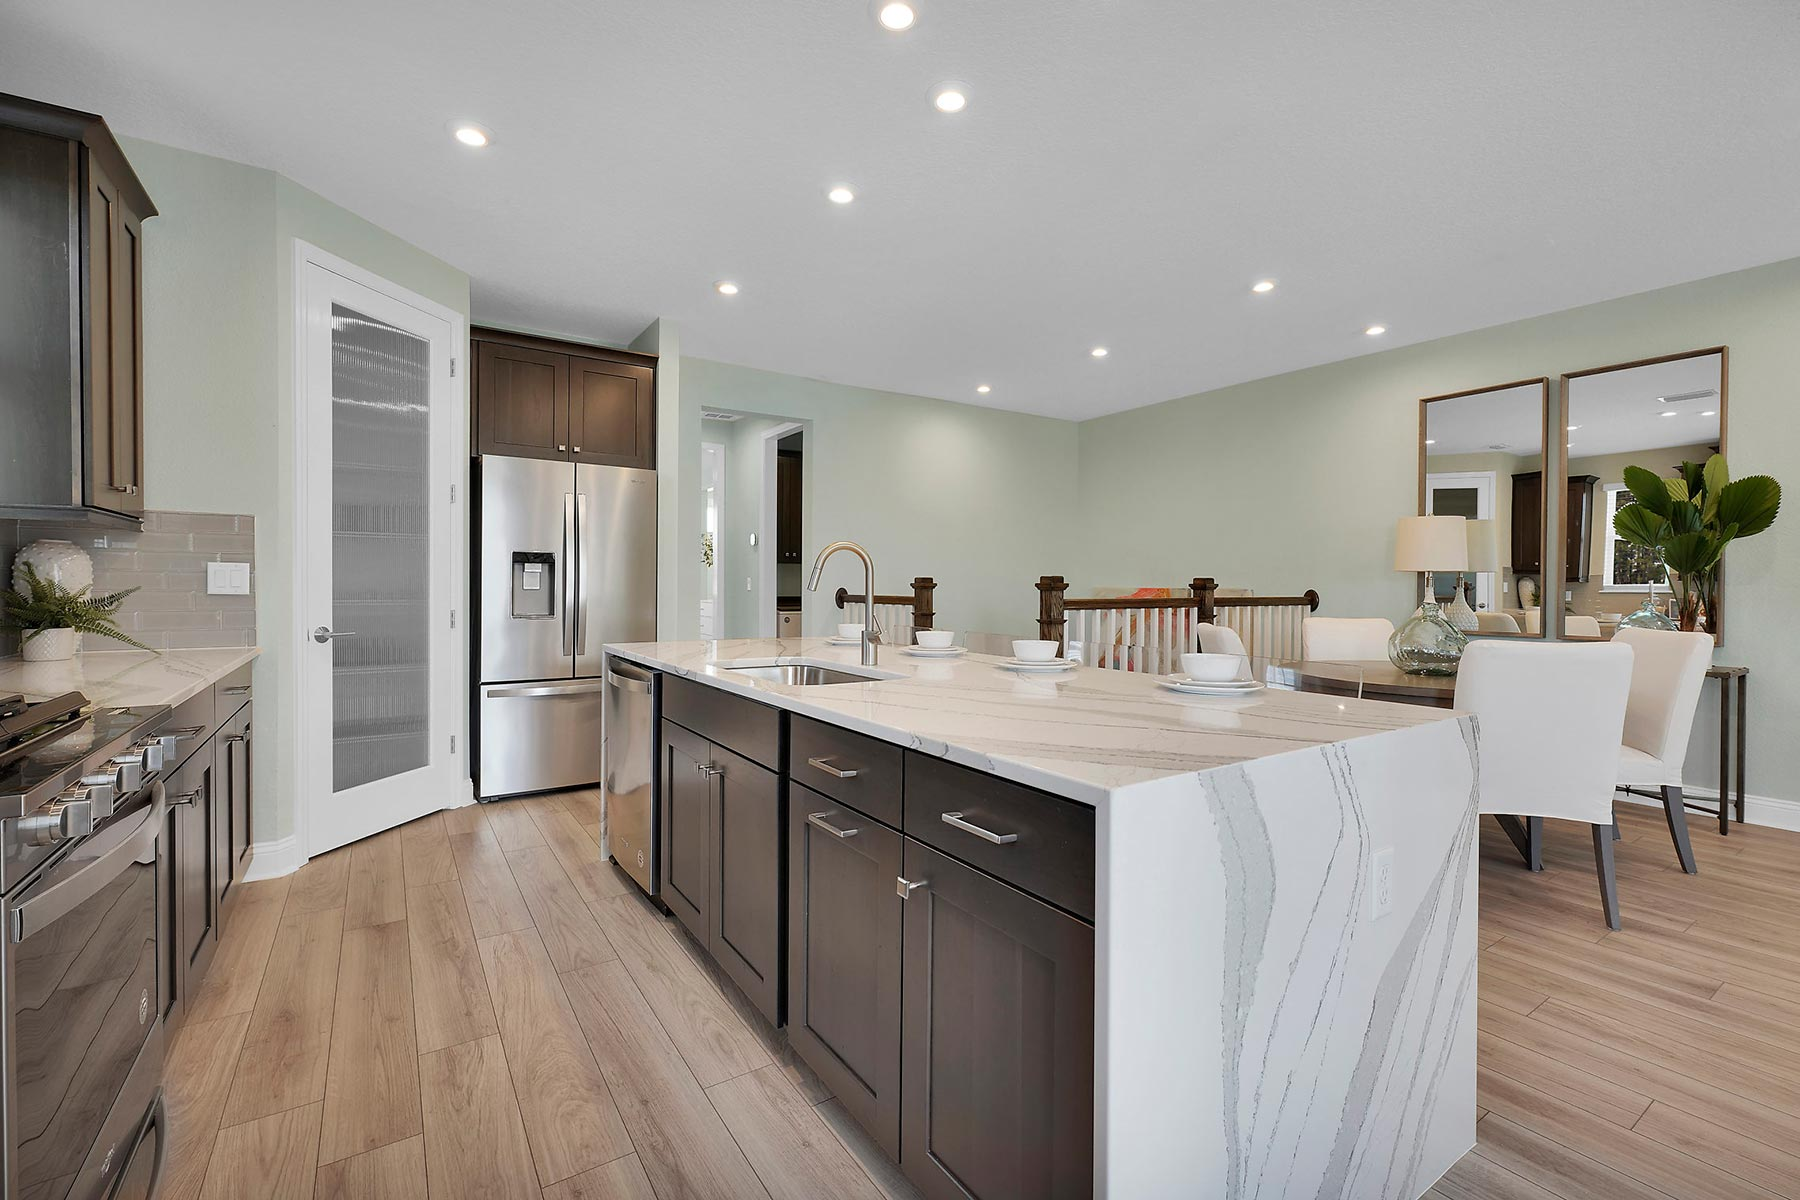 Kai Plan Kitchen at Pablo Cove in Jacksonville Florida by Mattamy Homes